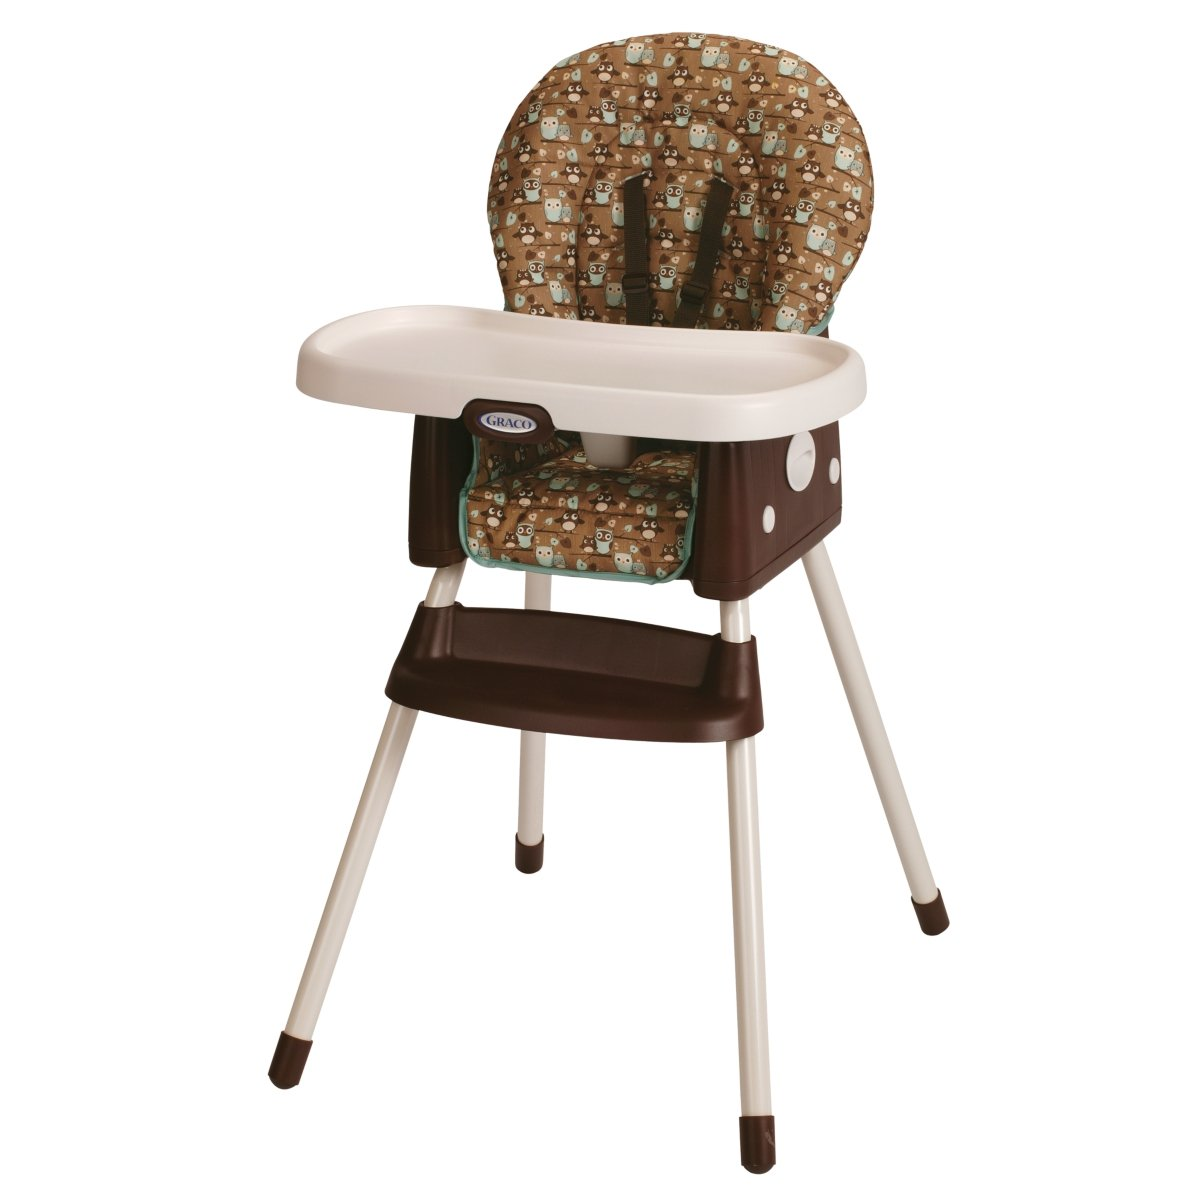 Uk: Highchairs, Seats Accessories: Baby Products